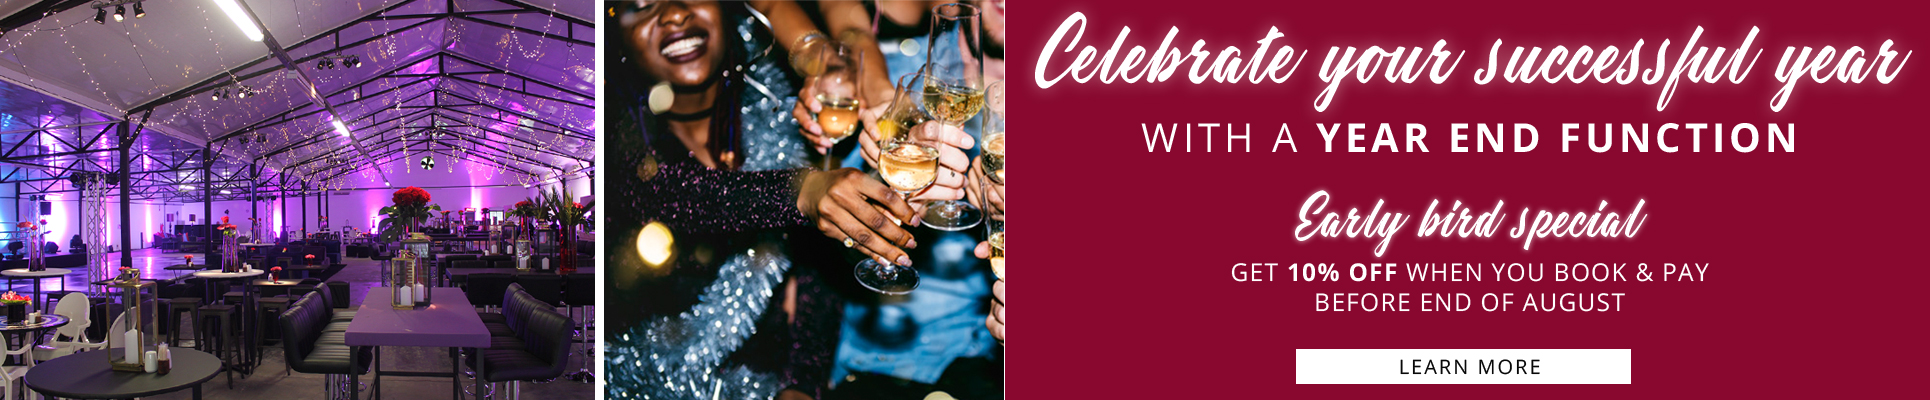 Misty Hills Country Hotel Year End Functions Early Bird Specials Gauteng Muldersdrift venues 2019